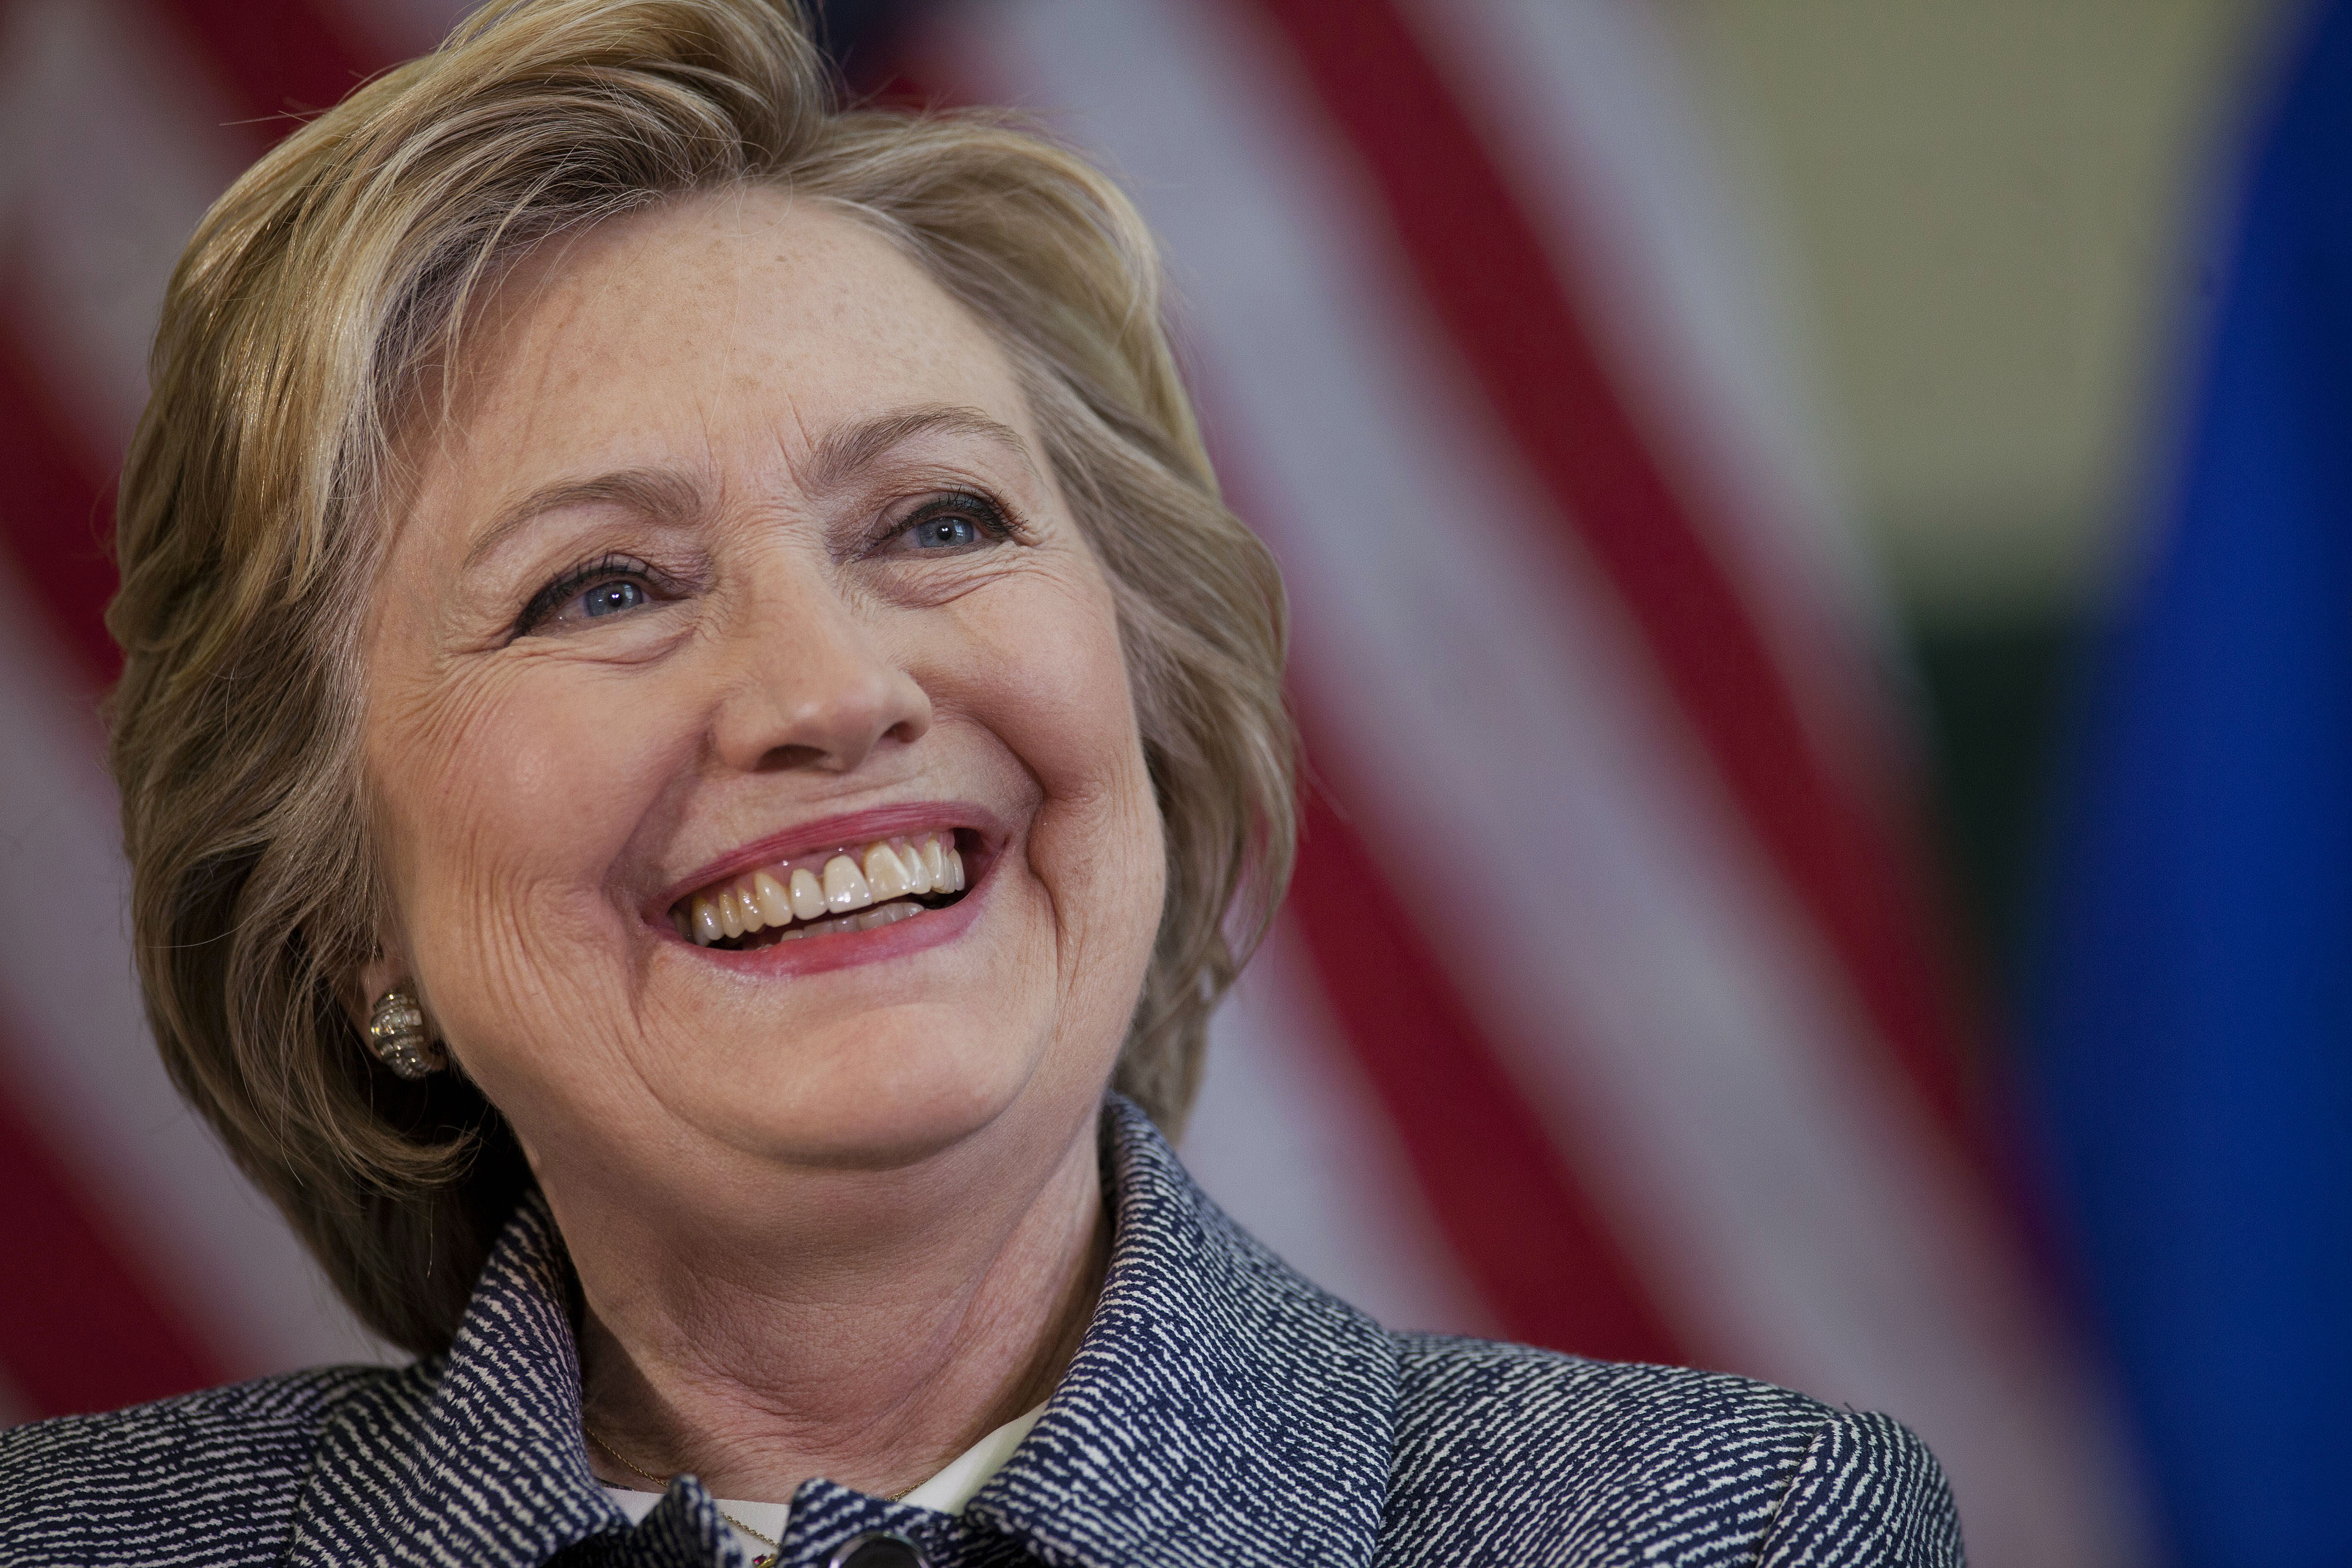 Hillary Clinton, former Secretary of State and 2016 Democratic presidential candidate, smiles while speaking during a campaign event in Hartford, Connecticut, U.S., on Thursday, April 21, 2016. Tuesday night's New York primary not only ended a multi-state losing streak for current front-runners Donald Trump and Clinton, who won roughly 60 percent of the vote each, but also moved them an important step closer to the general election.